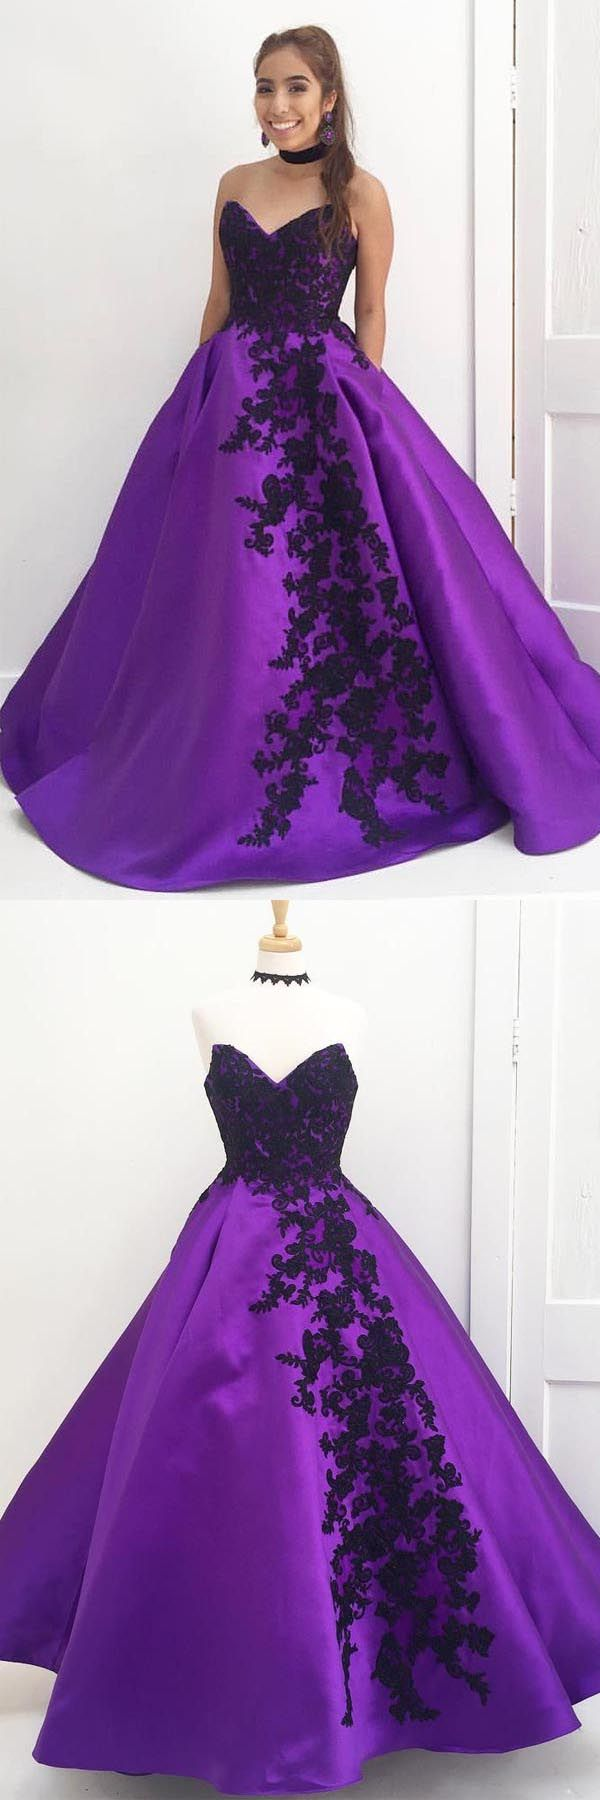 Sweetheart Ball Gown Purple Long Prom Dress with B… -  Prom shopping is alive and well on Pinterest. Compare prices for this @ Wrhel.com before you commit to buy. #Prom